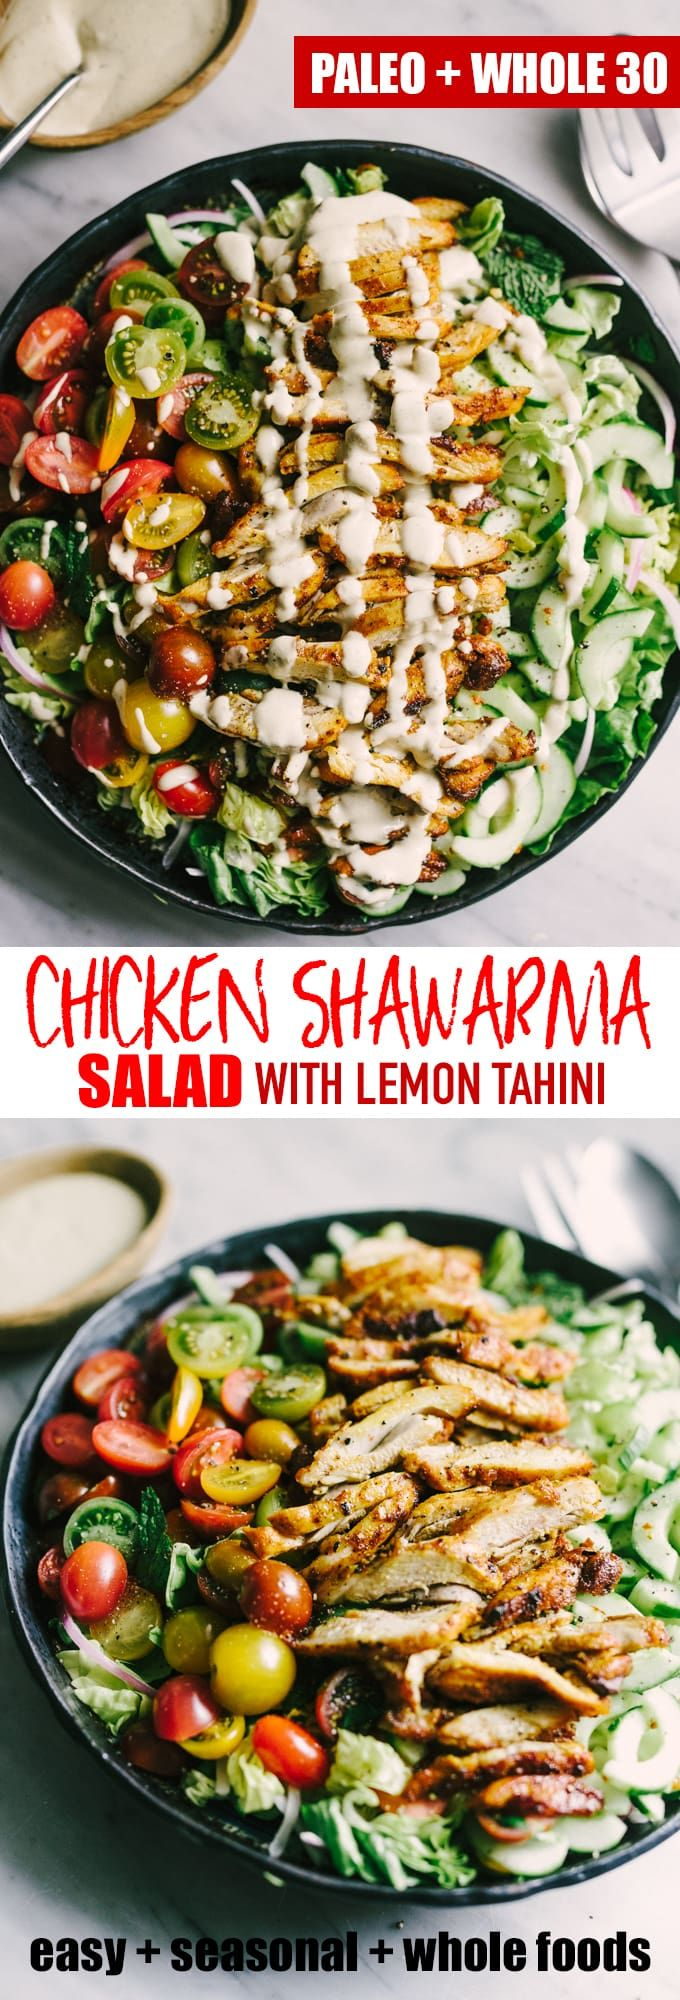 Chicken shawarma salad is an incredibly flavorful, fresh, and elegant weeknight paleo dinner. Each bite is crisp, bright and bursting with flavor. The marinade takes just minutes and can be prepped the night before, making for an easy and fast dinner. #paleo #shawarma #realfood #wholefood #whole30